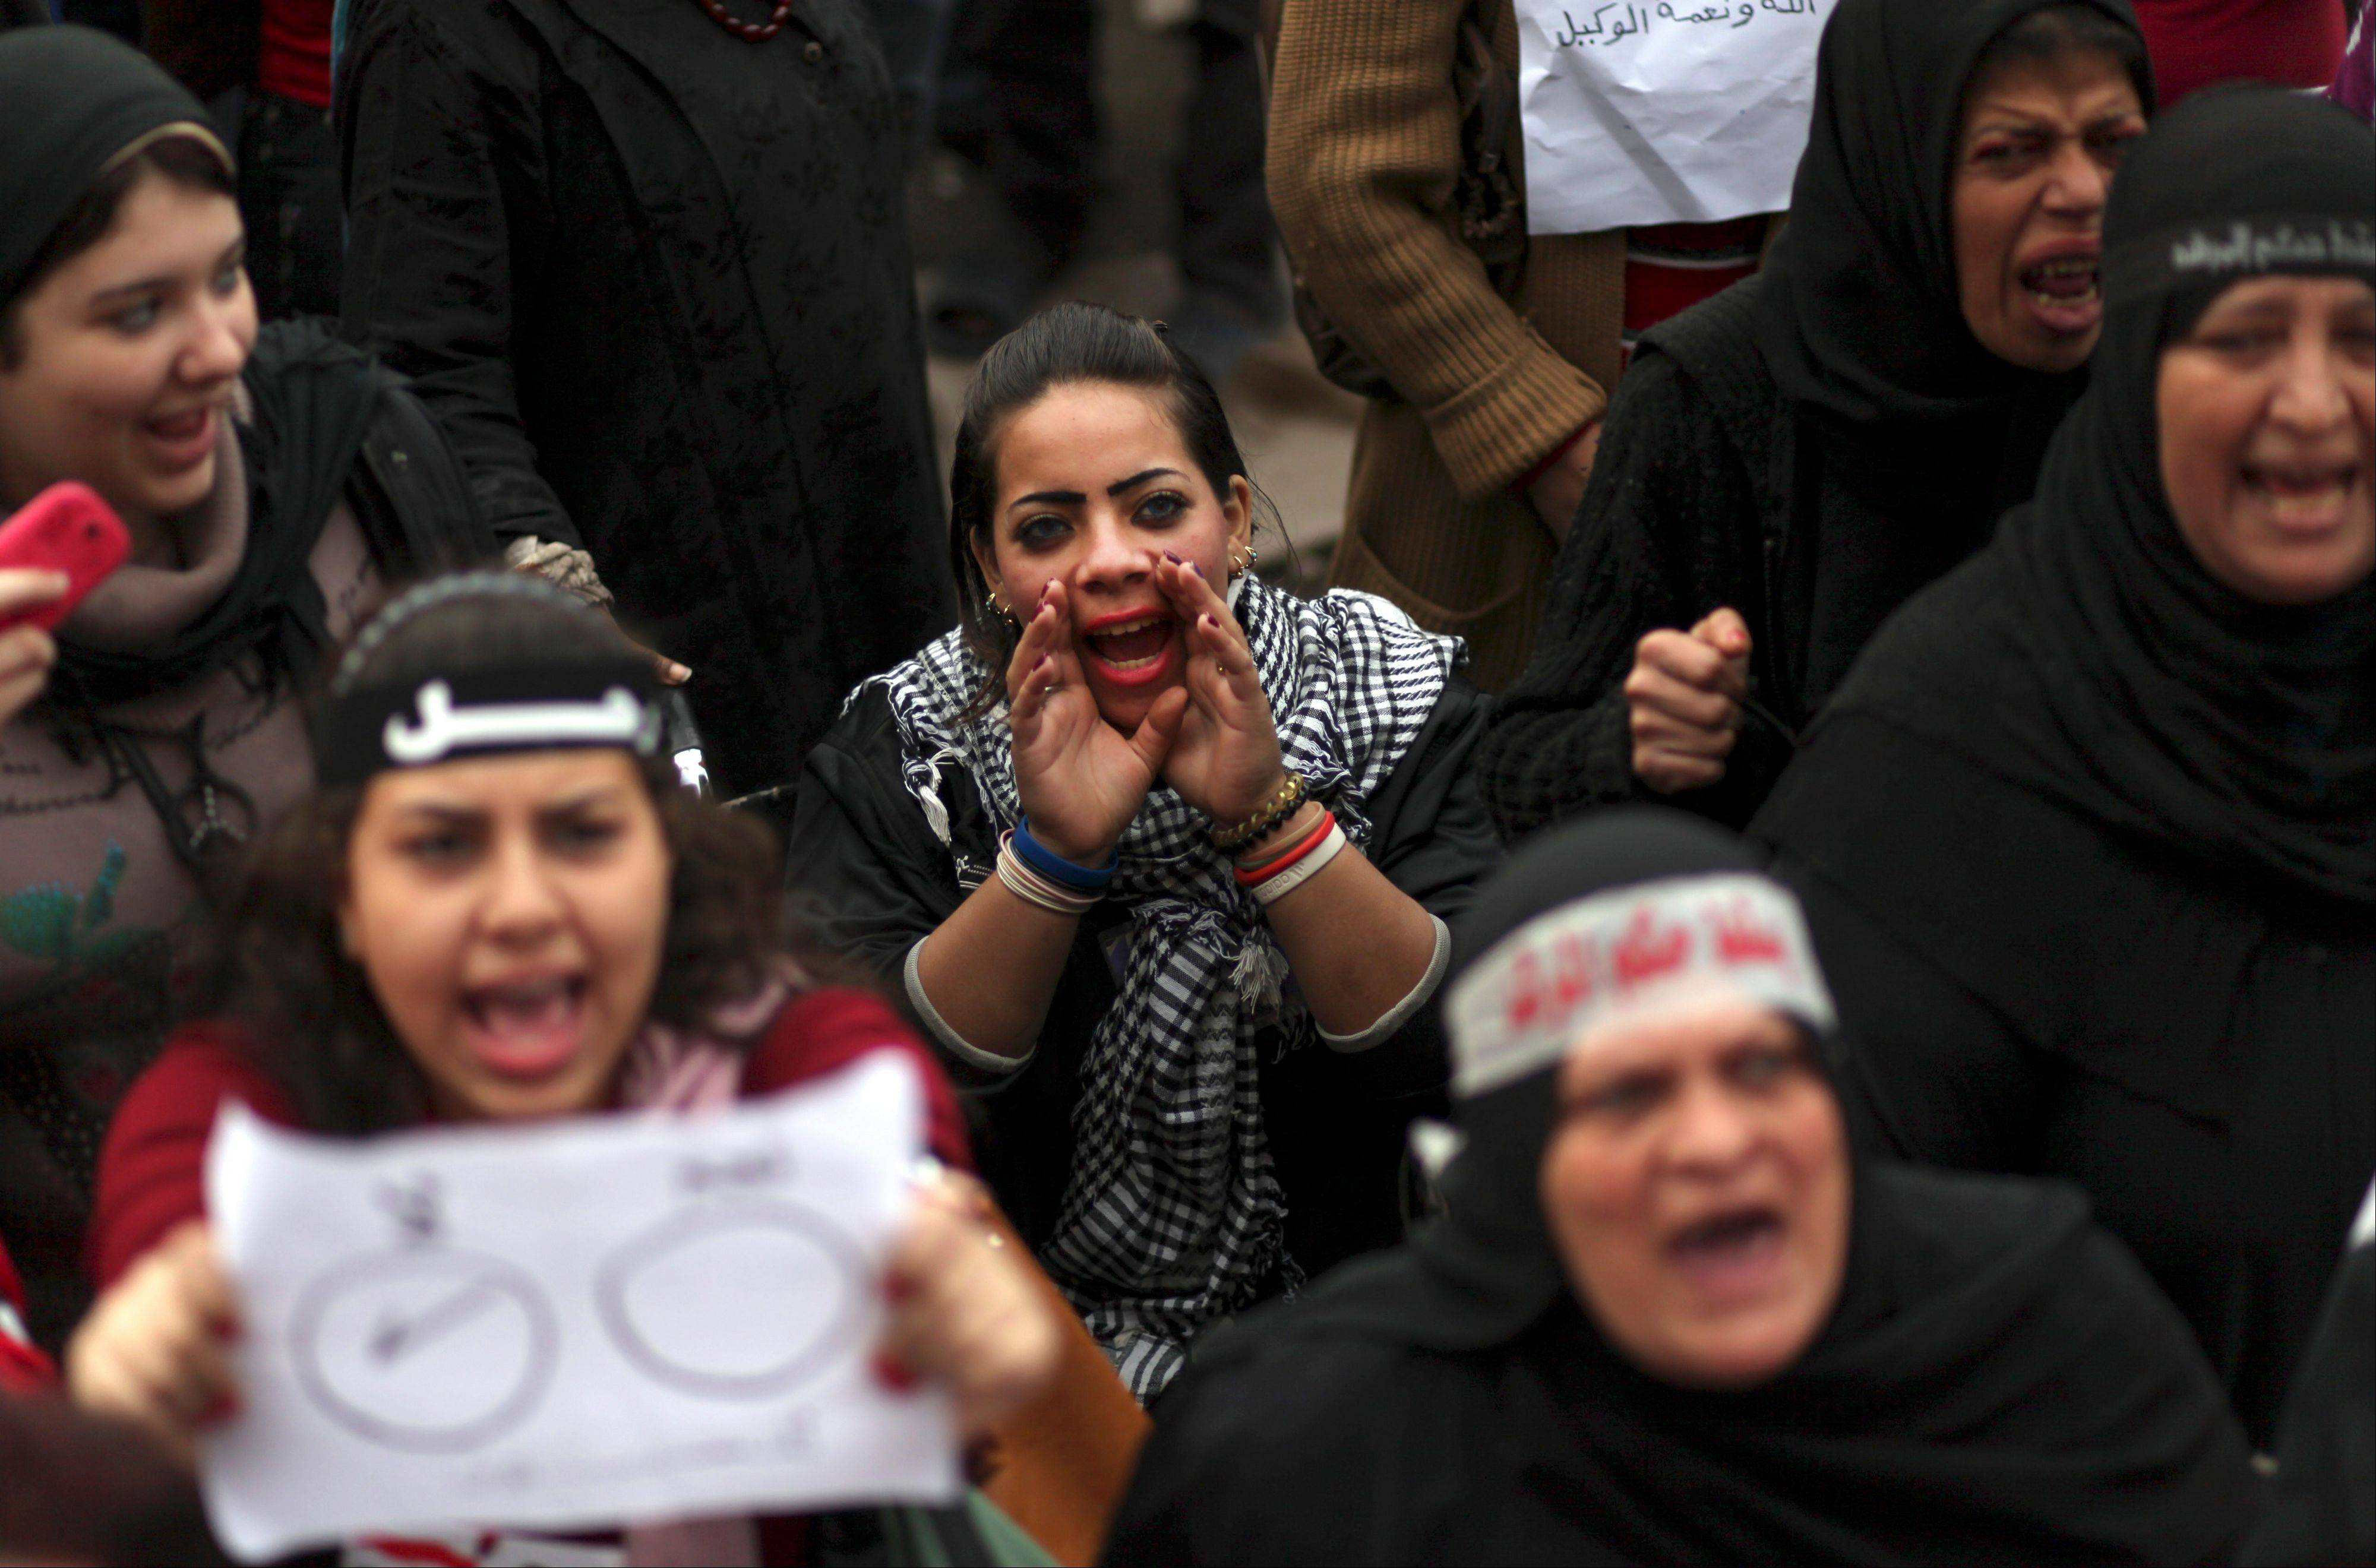 Egyptian protesters chant slogans as they attend a demonstration in Tahrir Square in Cairo, Egypt, Friday, Dec. 14, 2012. Opposing sides in Egypt's political crisis were staging rival rallies on Friday, the final day before voting starts on a contentious draft constitution that has plunged the country into turmoil and deeply divided the nation.